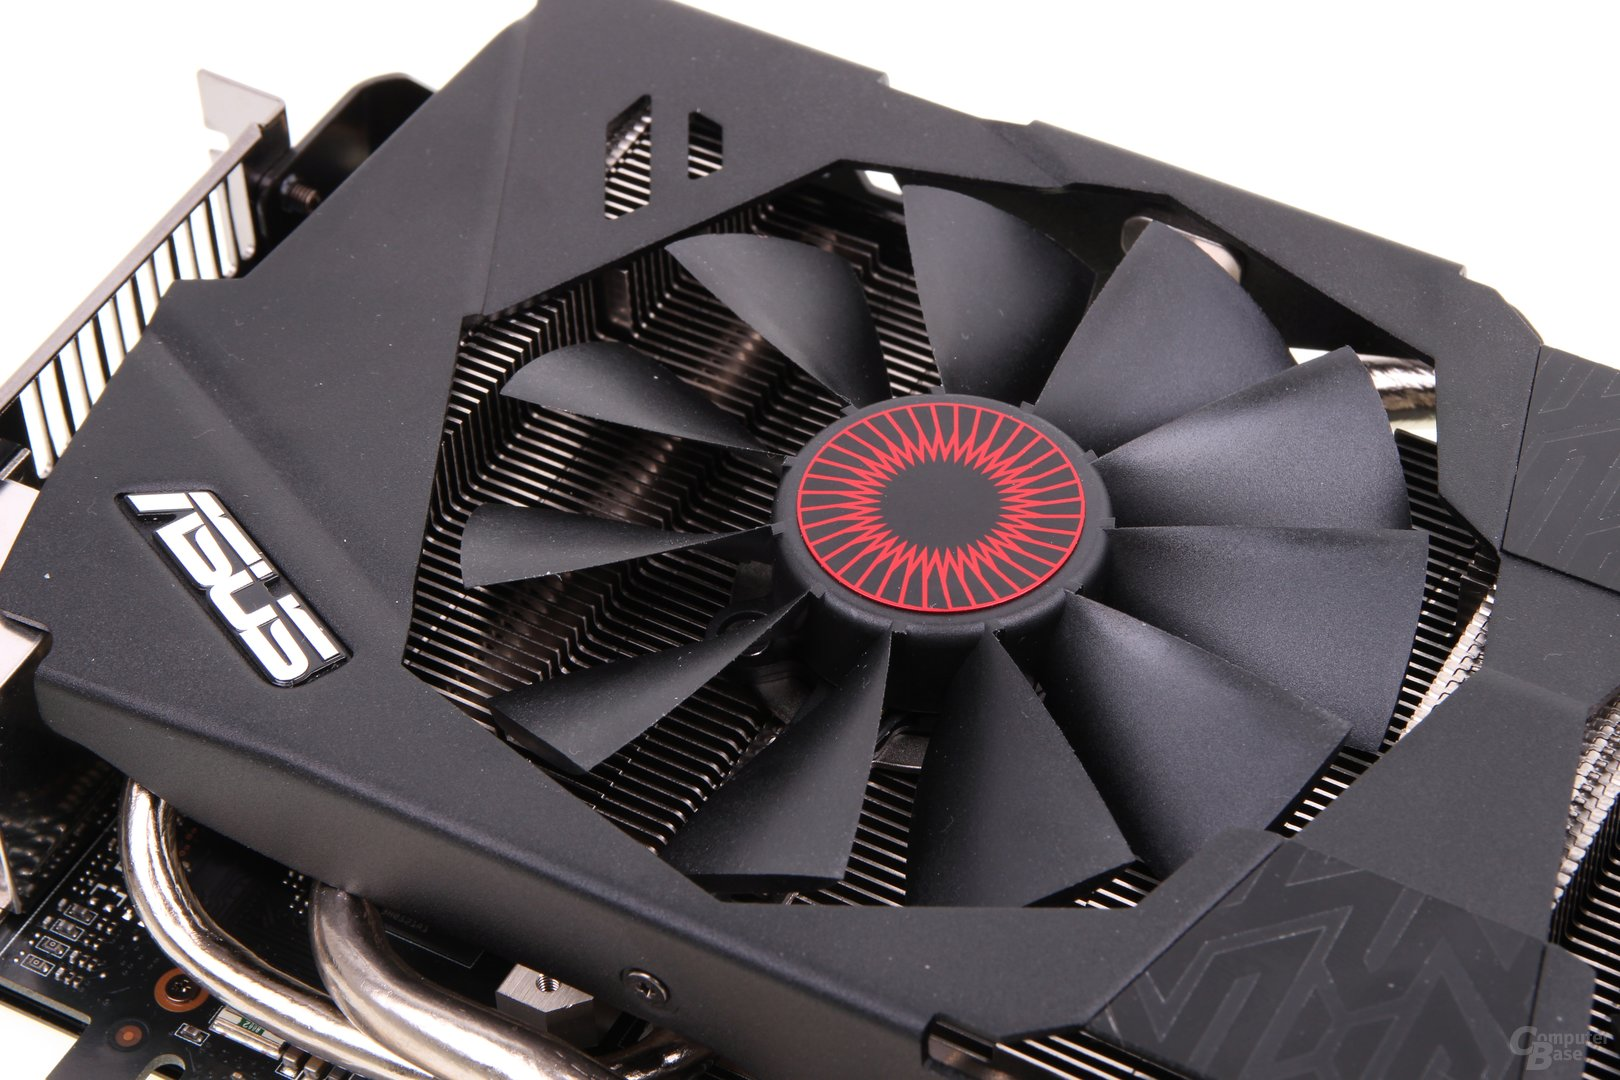 Asus GeForce GTX 780 Strix - Lüfter